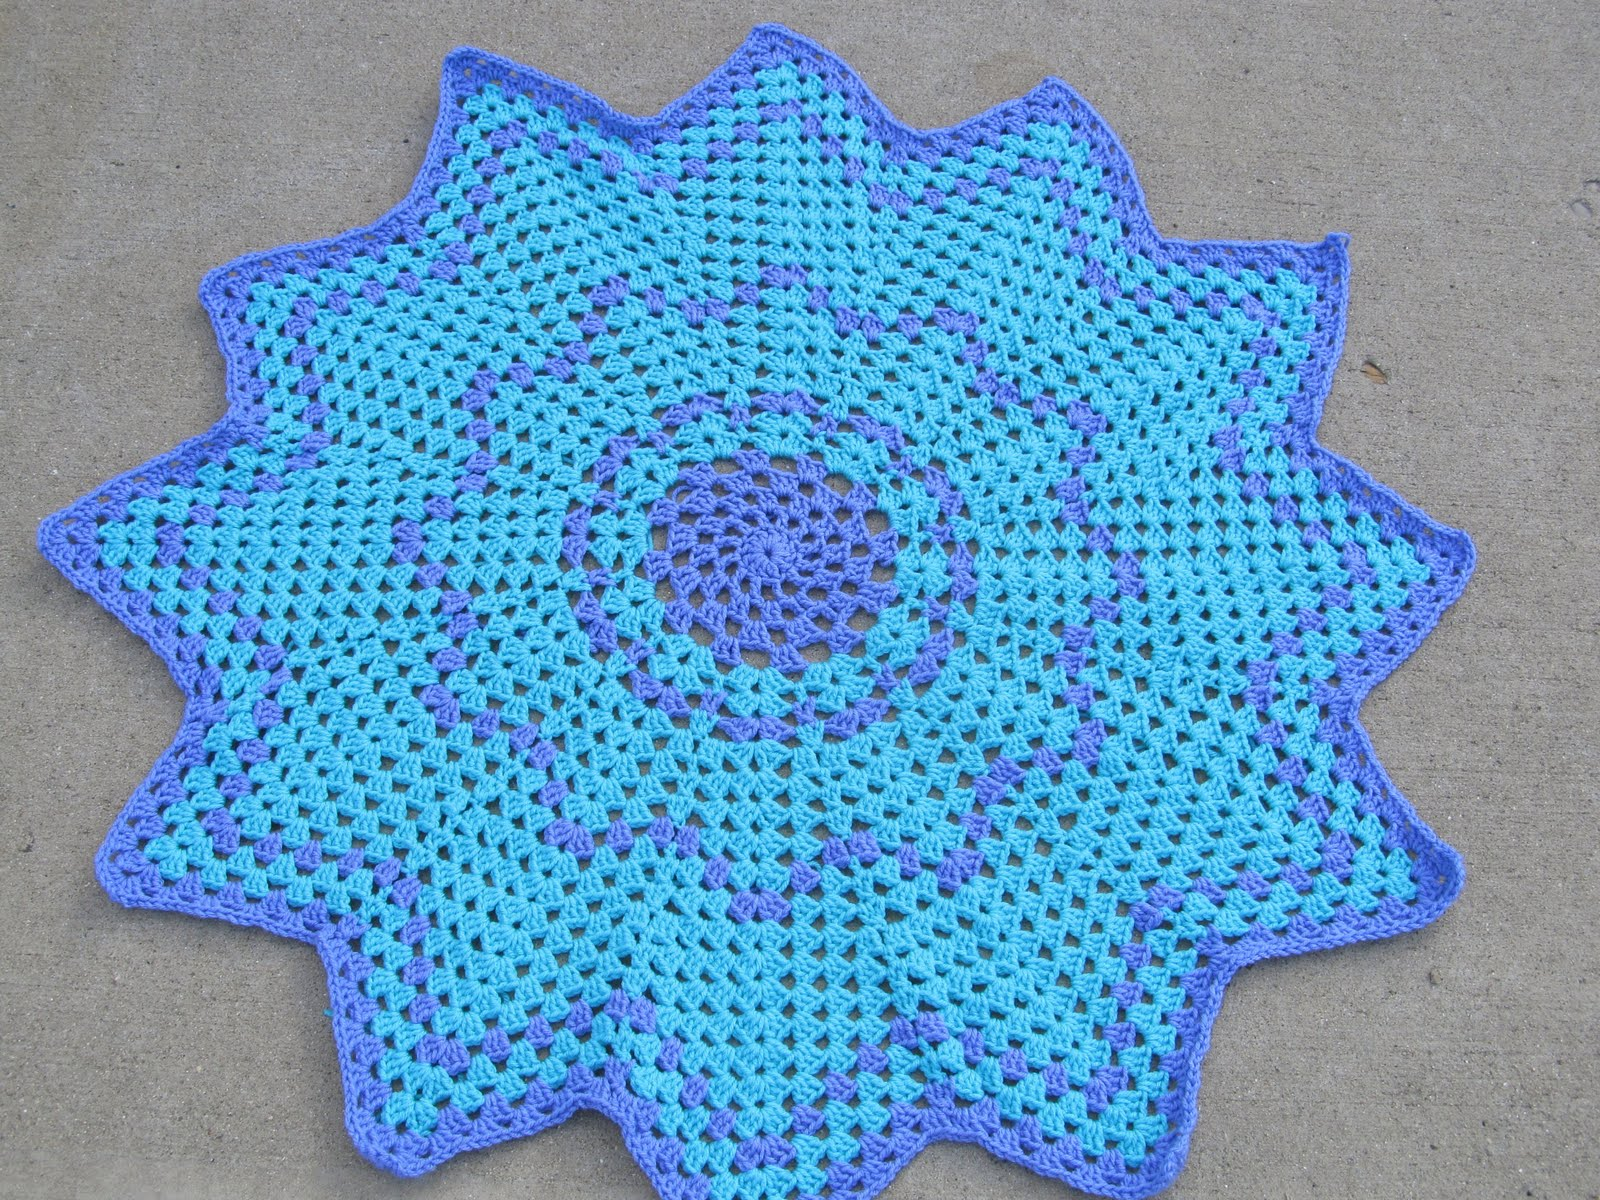 SmoothFox Crochet and Knit: SmoothFoxs Granny Round ...